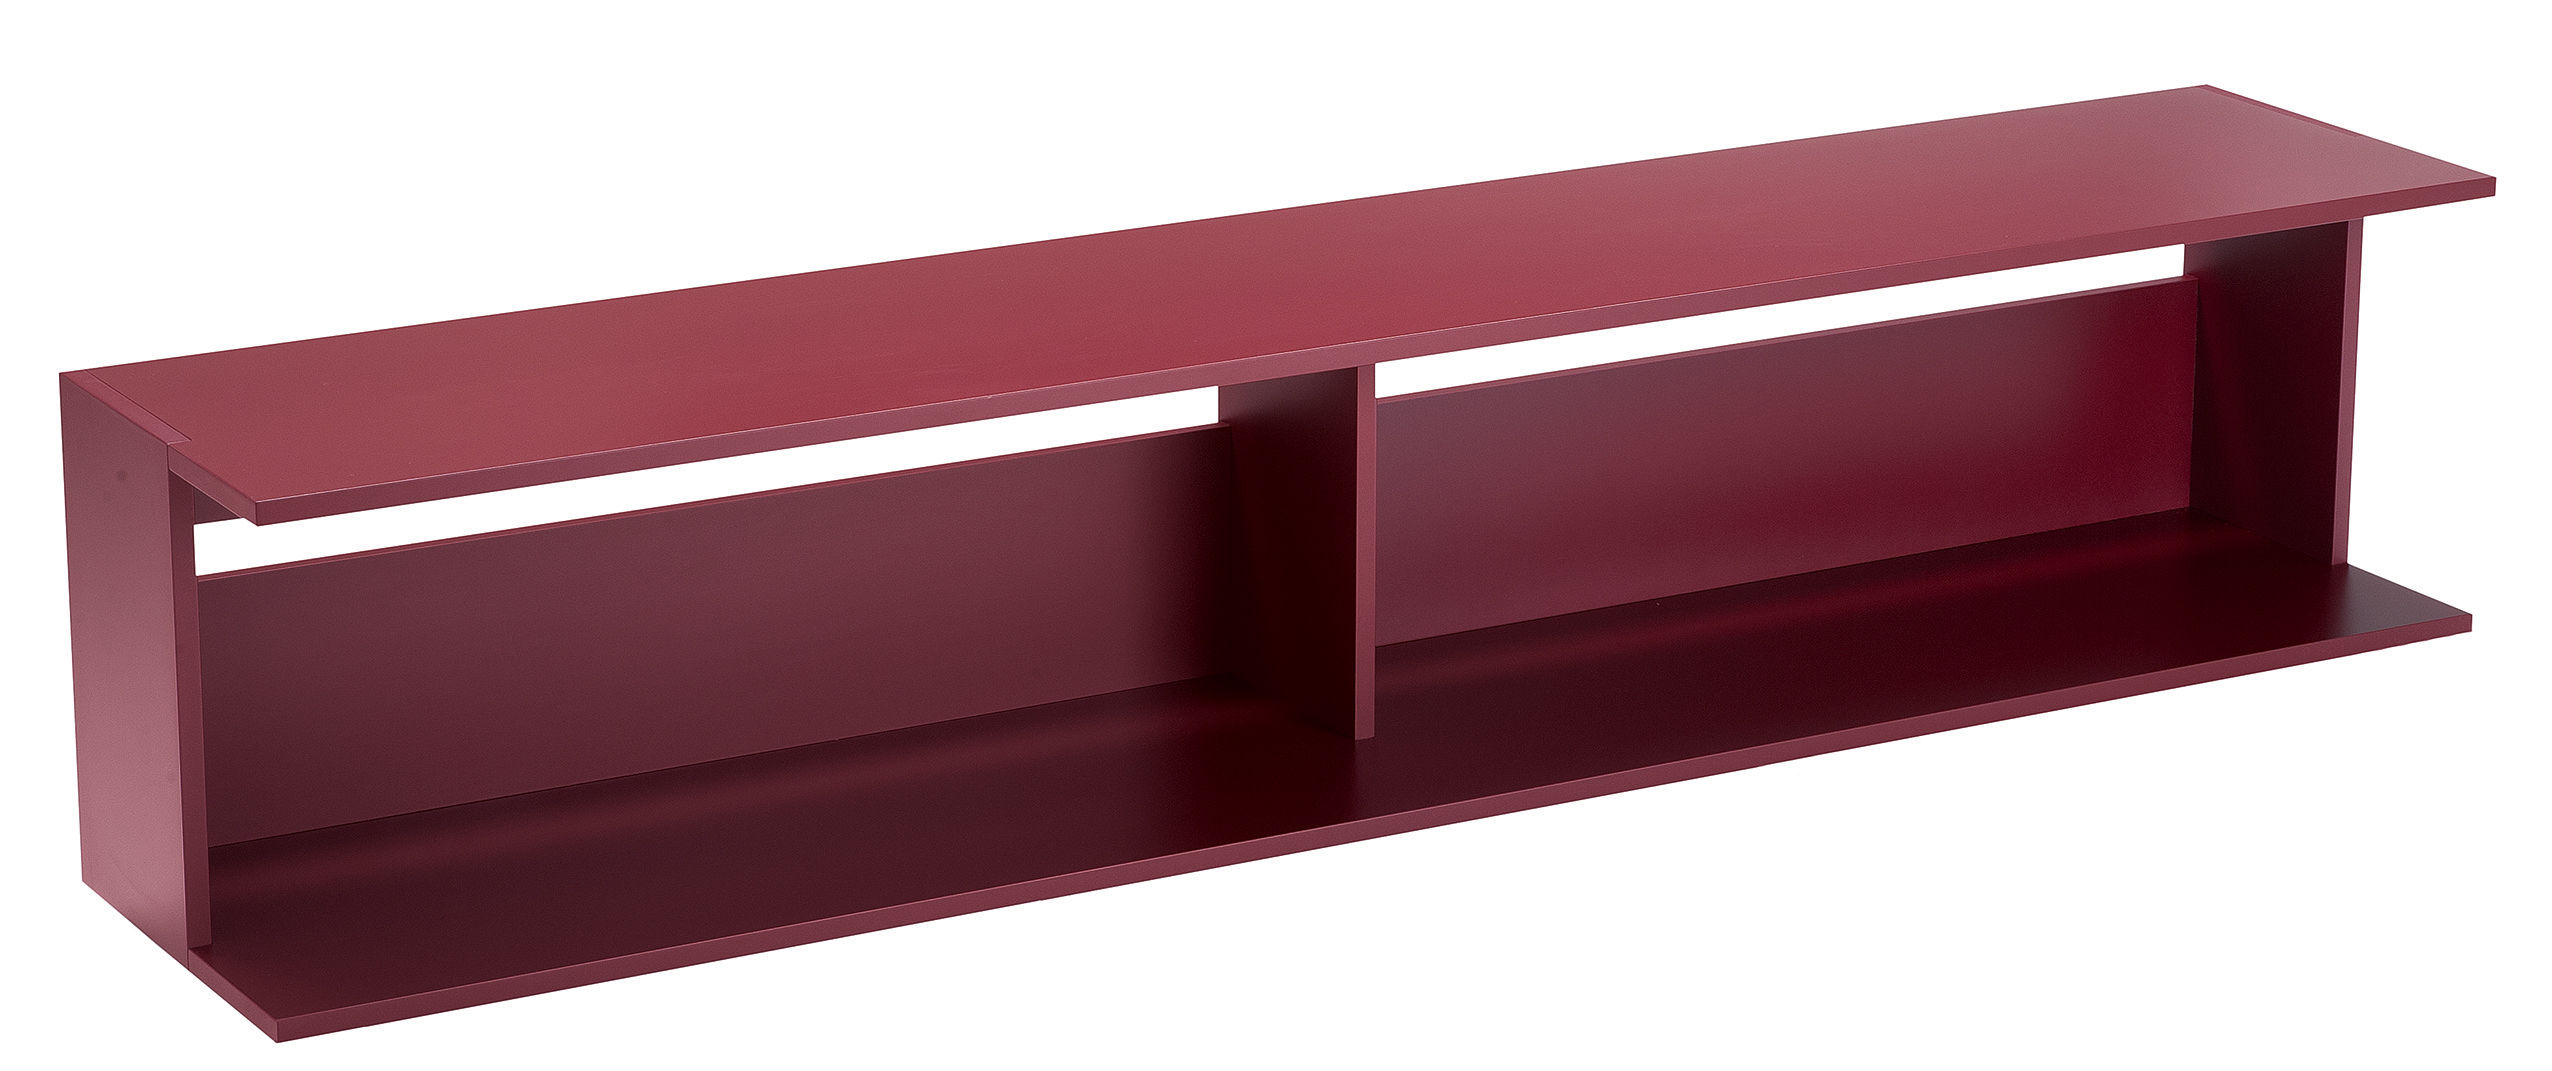 Furniture - Console Tables - Scott Low console by Zanotta - Burgundy - Varnished MDF